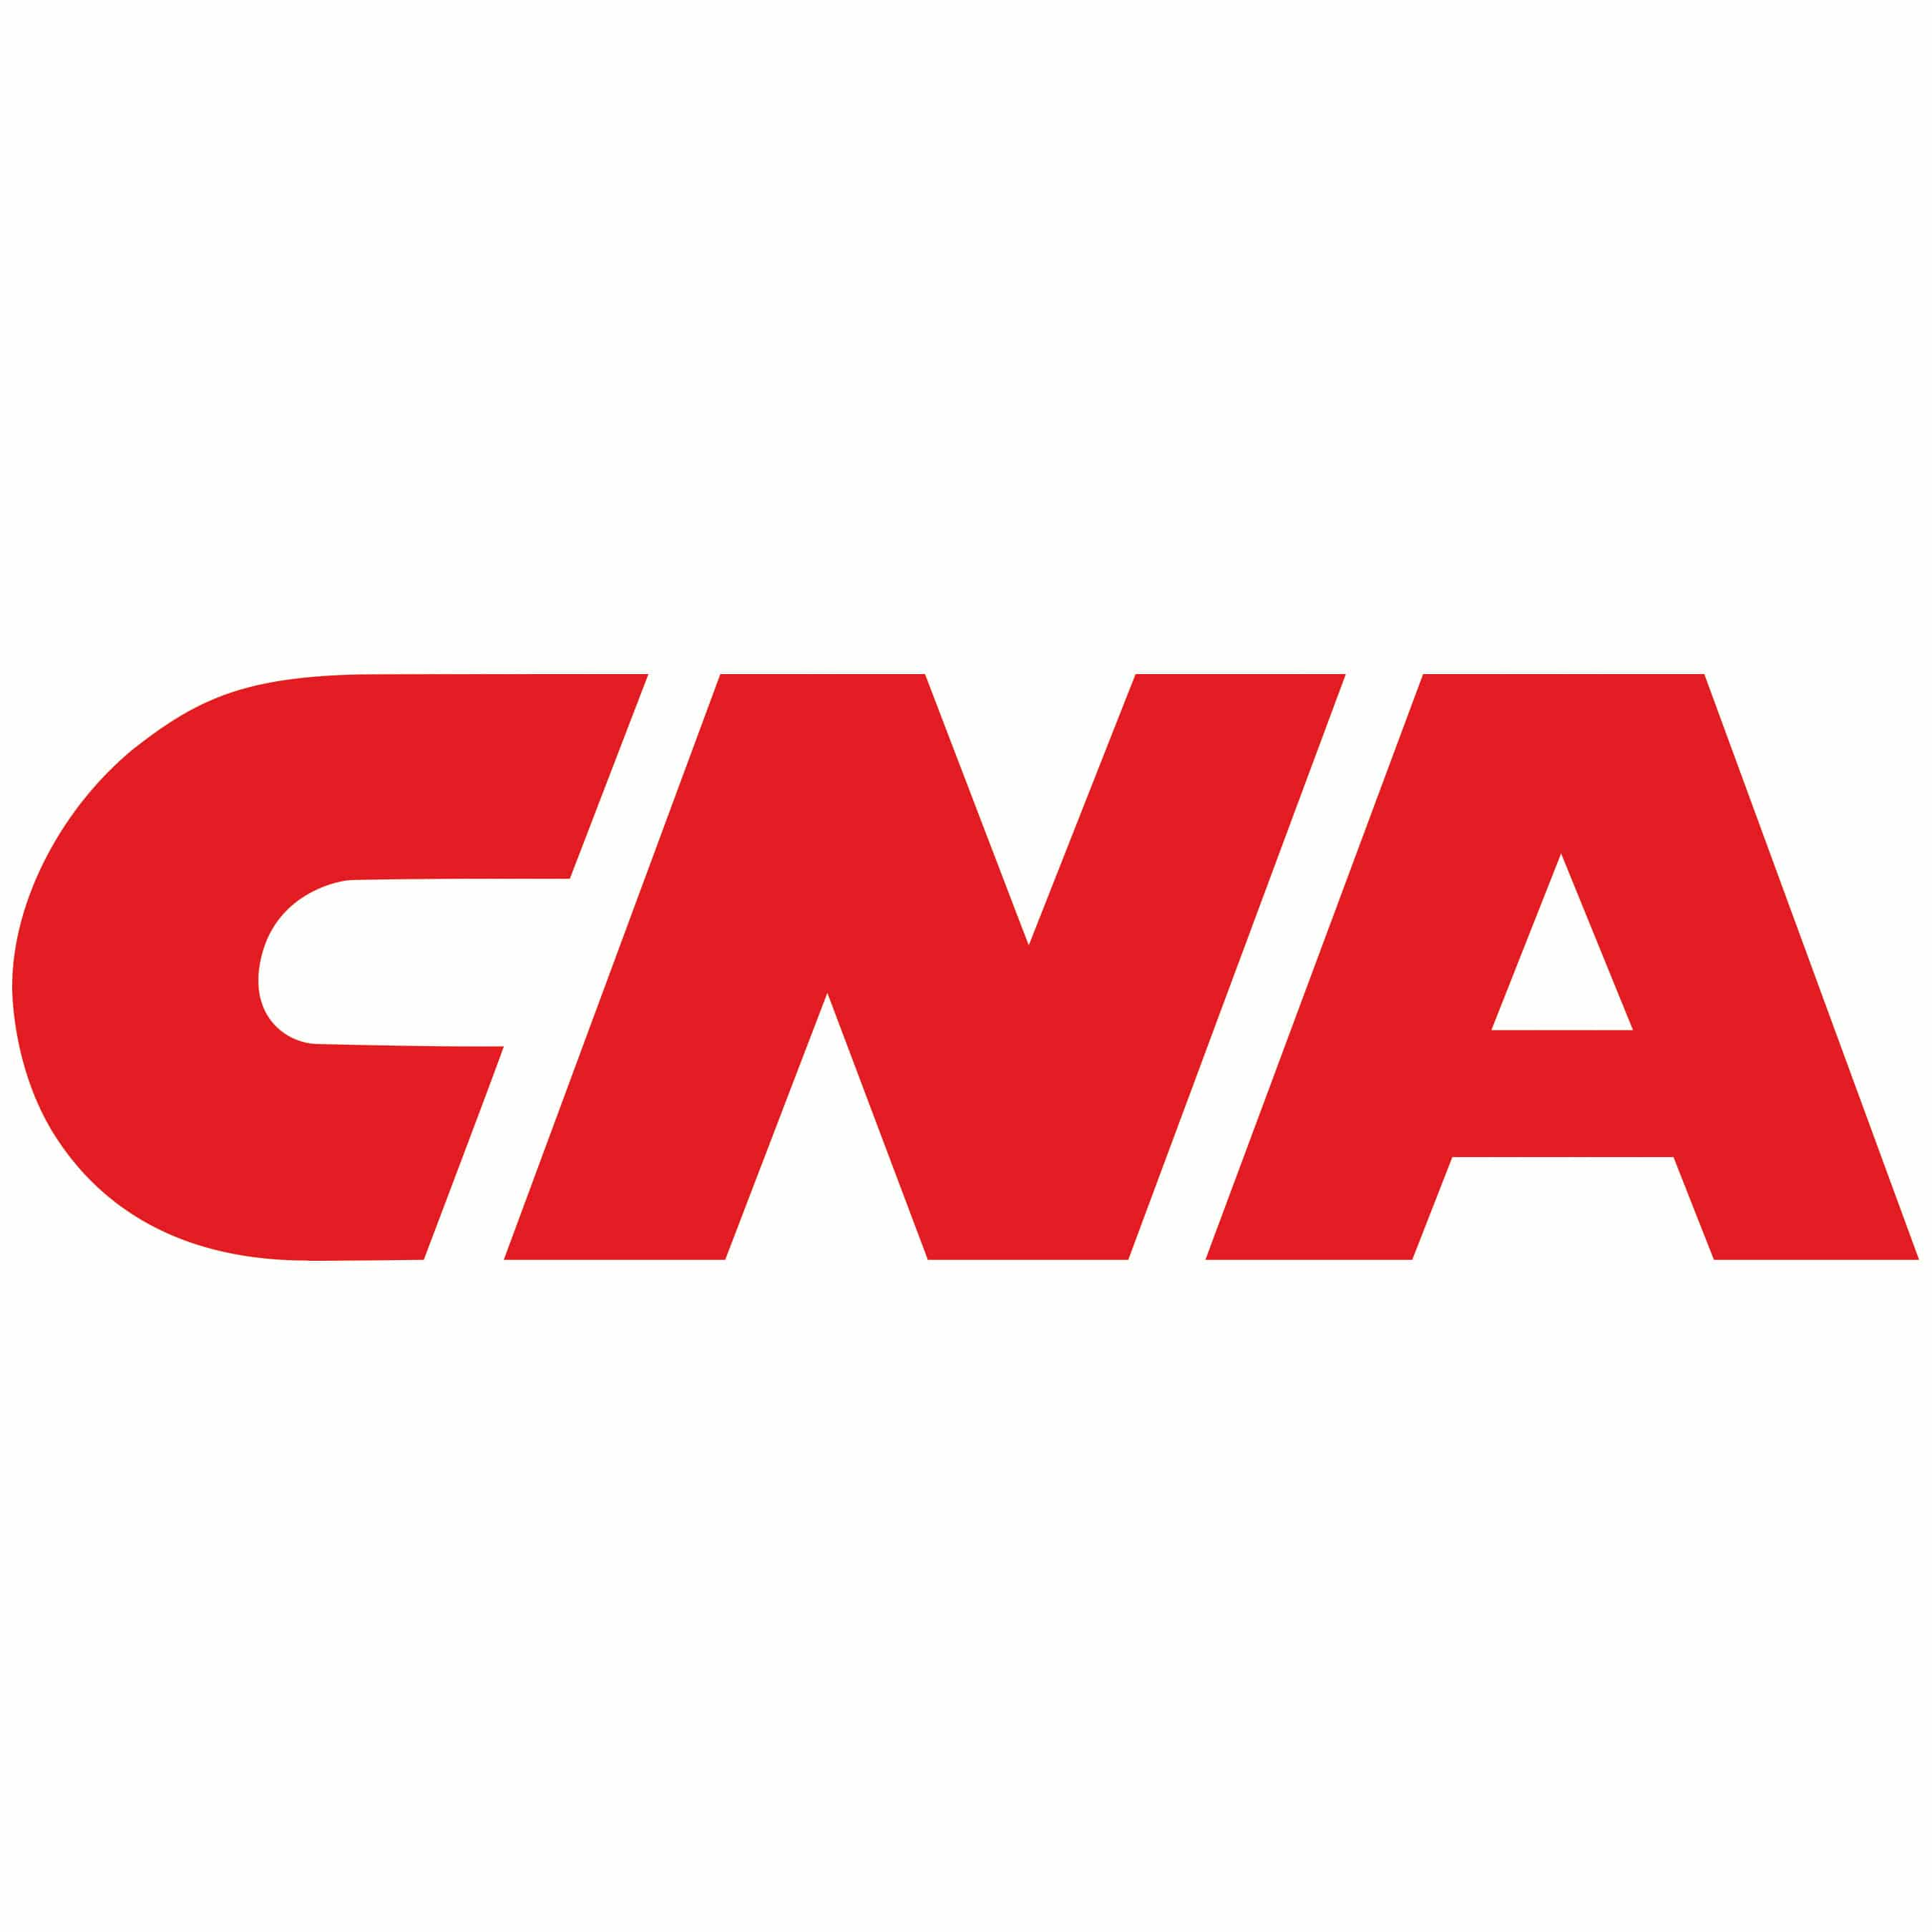 CNA FINANCIAL CORPORATION LOGO